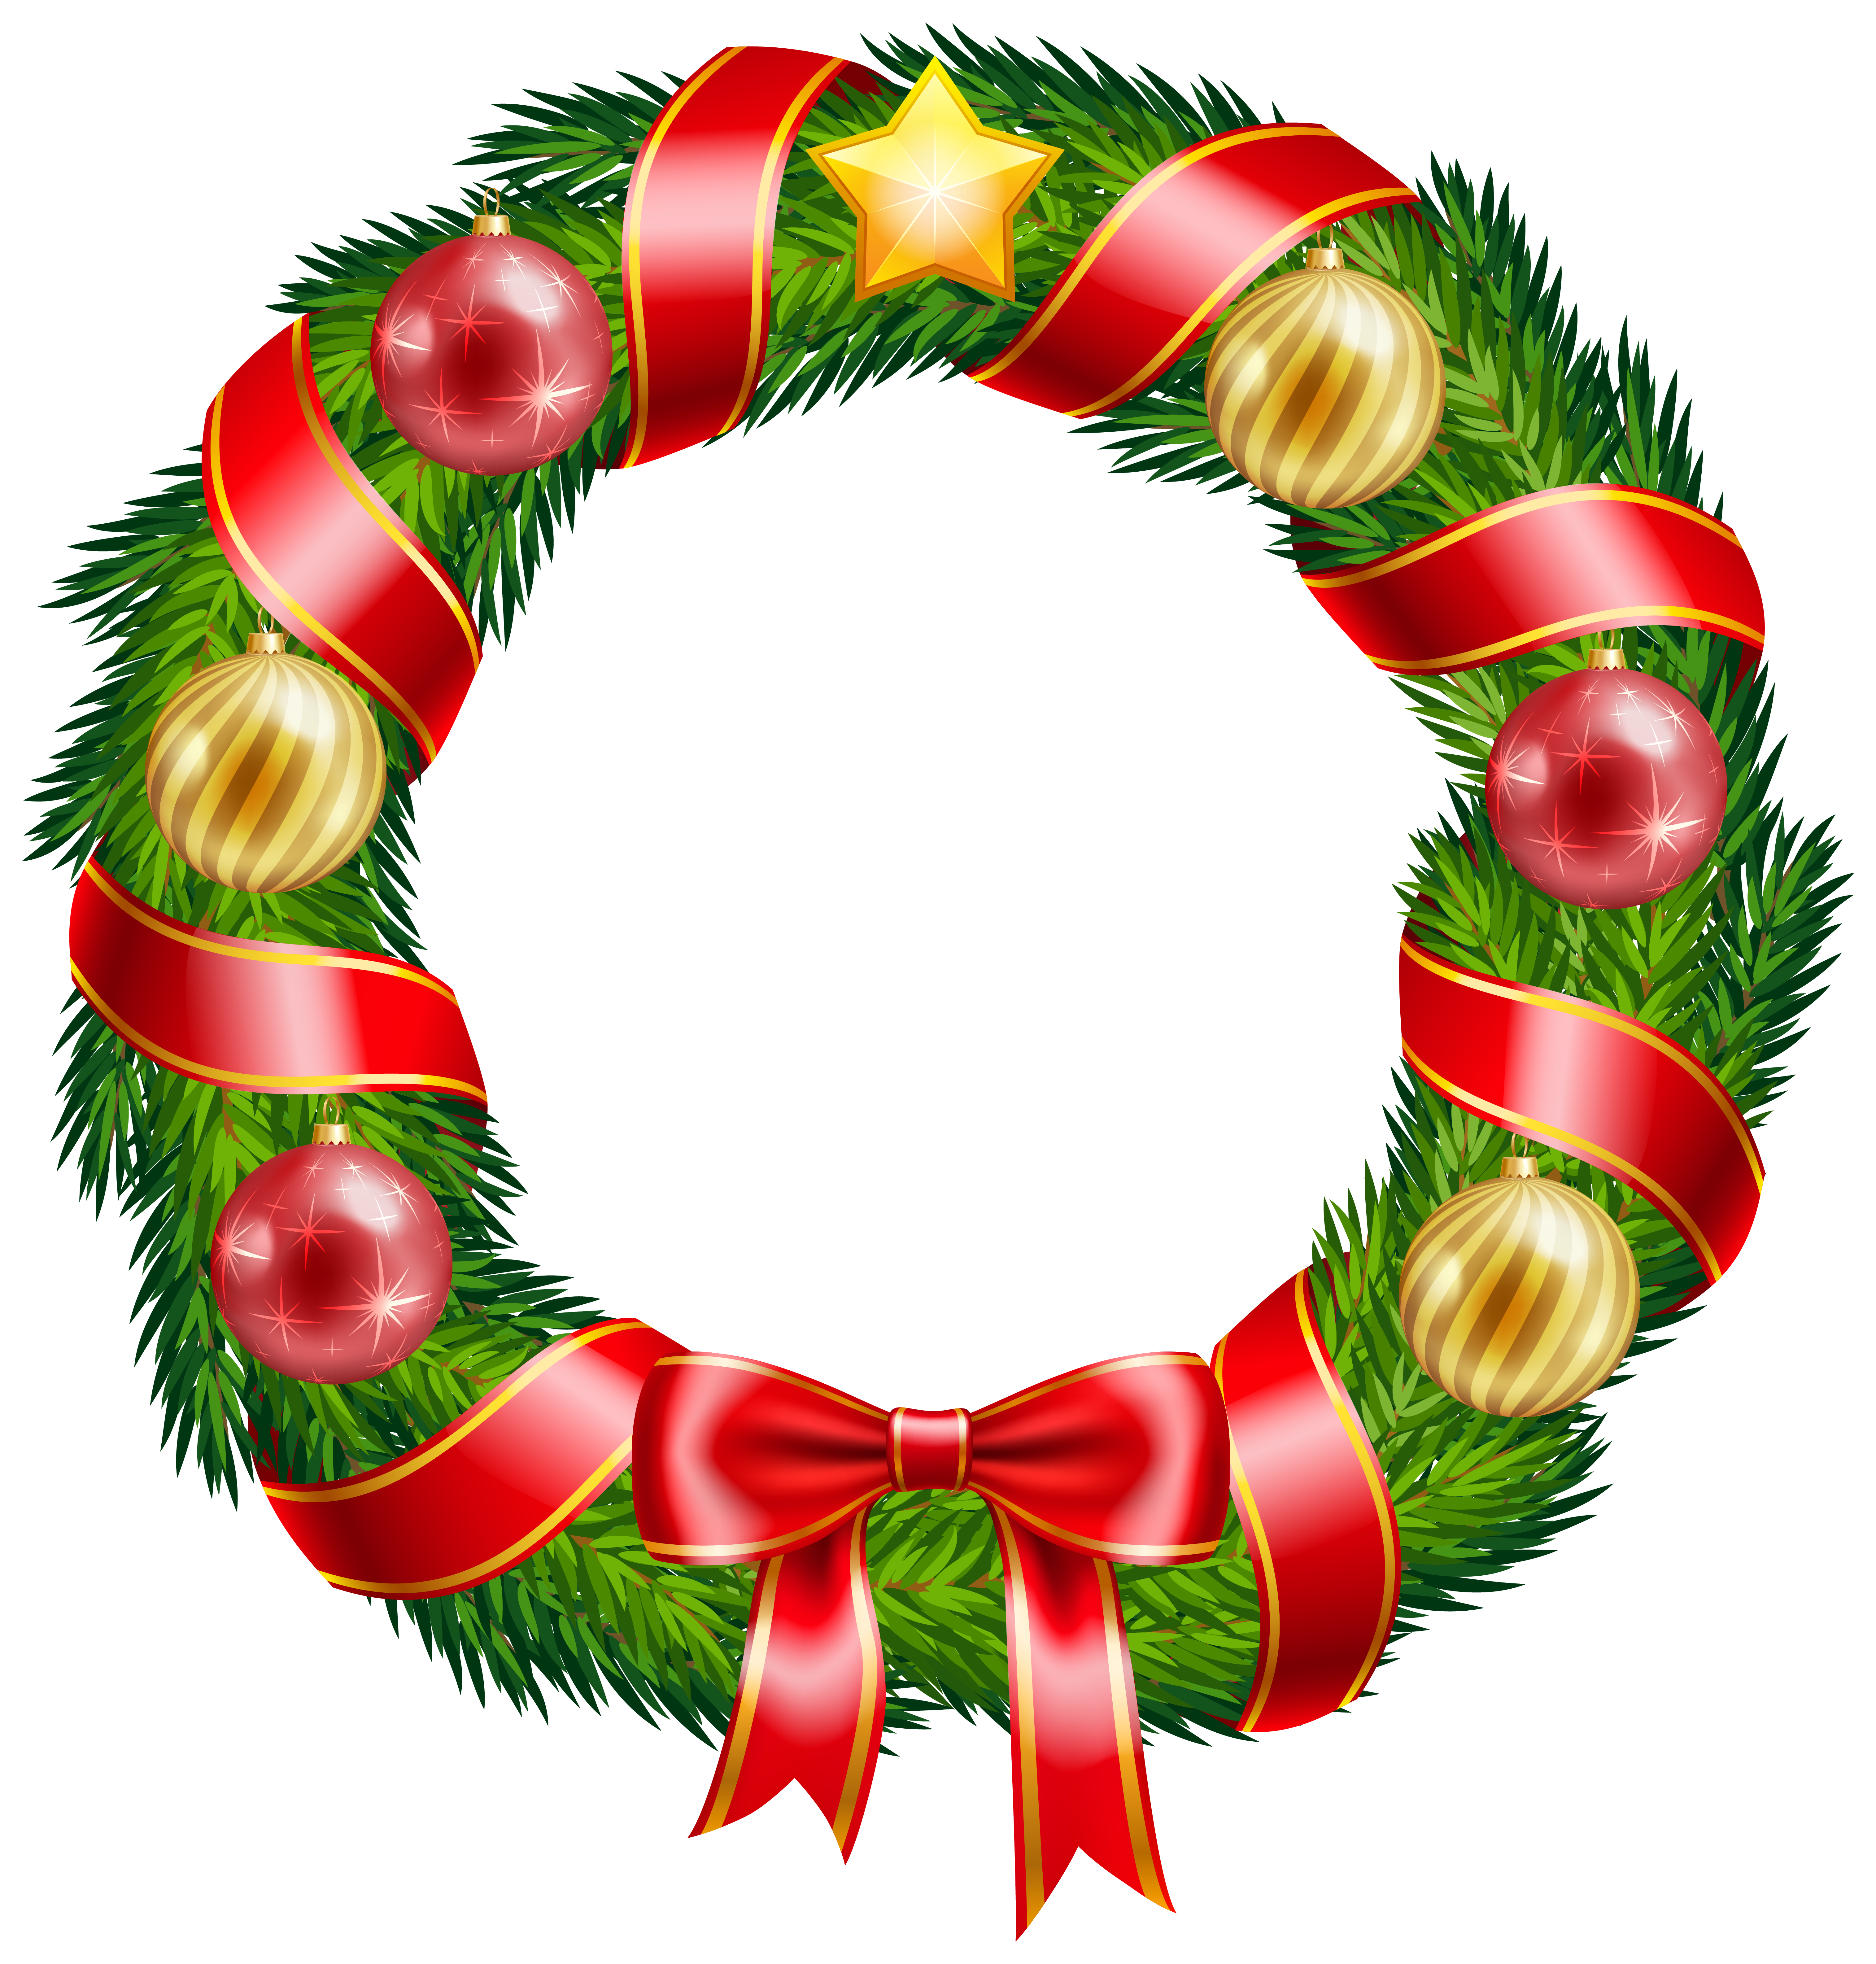 Christmas Garland Clipart.Garland Merry Christmas Transparent Png Clipart Free